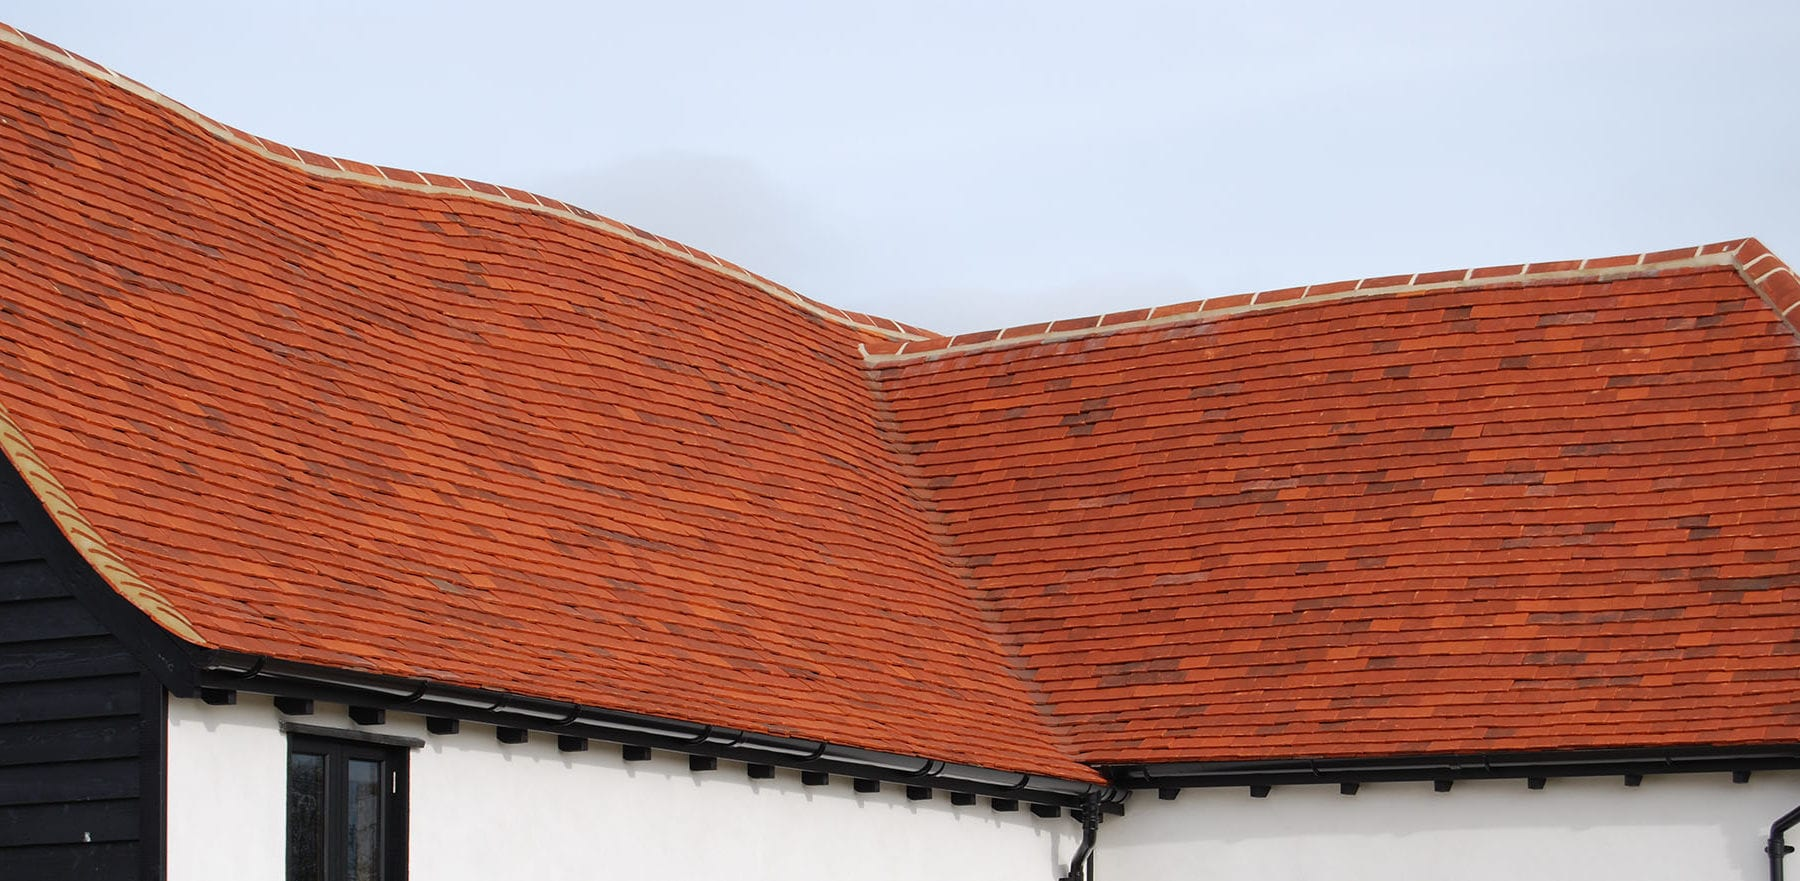 Lifestiles - Handmade Red Clay Roof Tiles - Saffron Walden, England 3